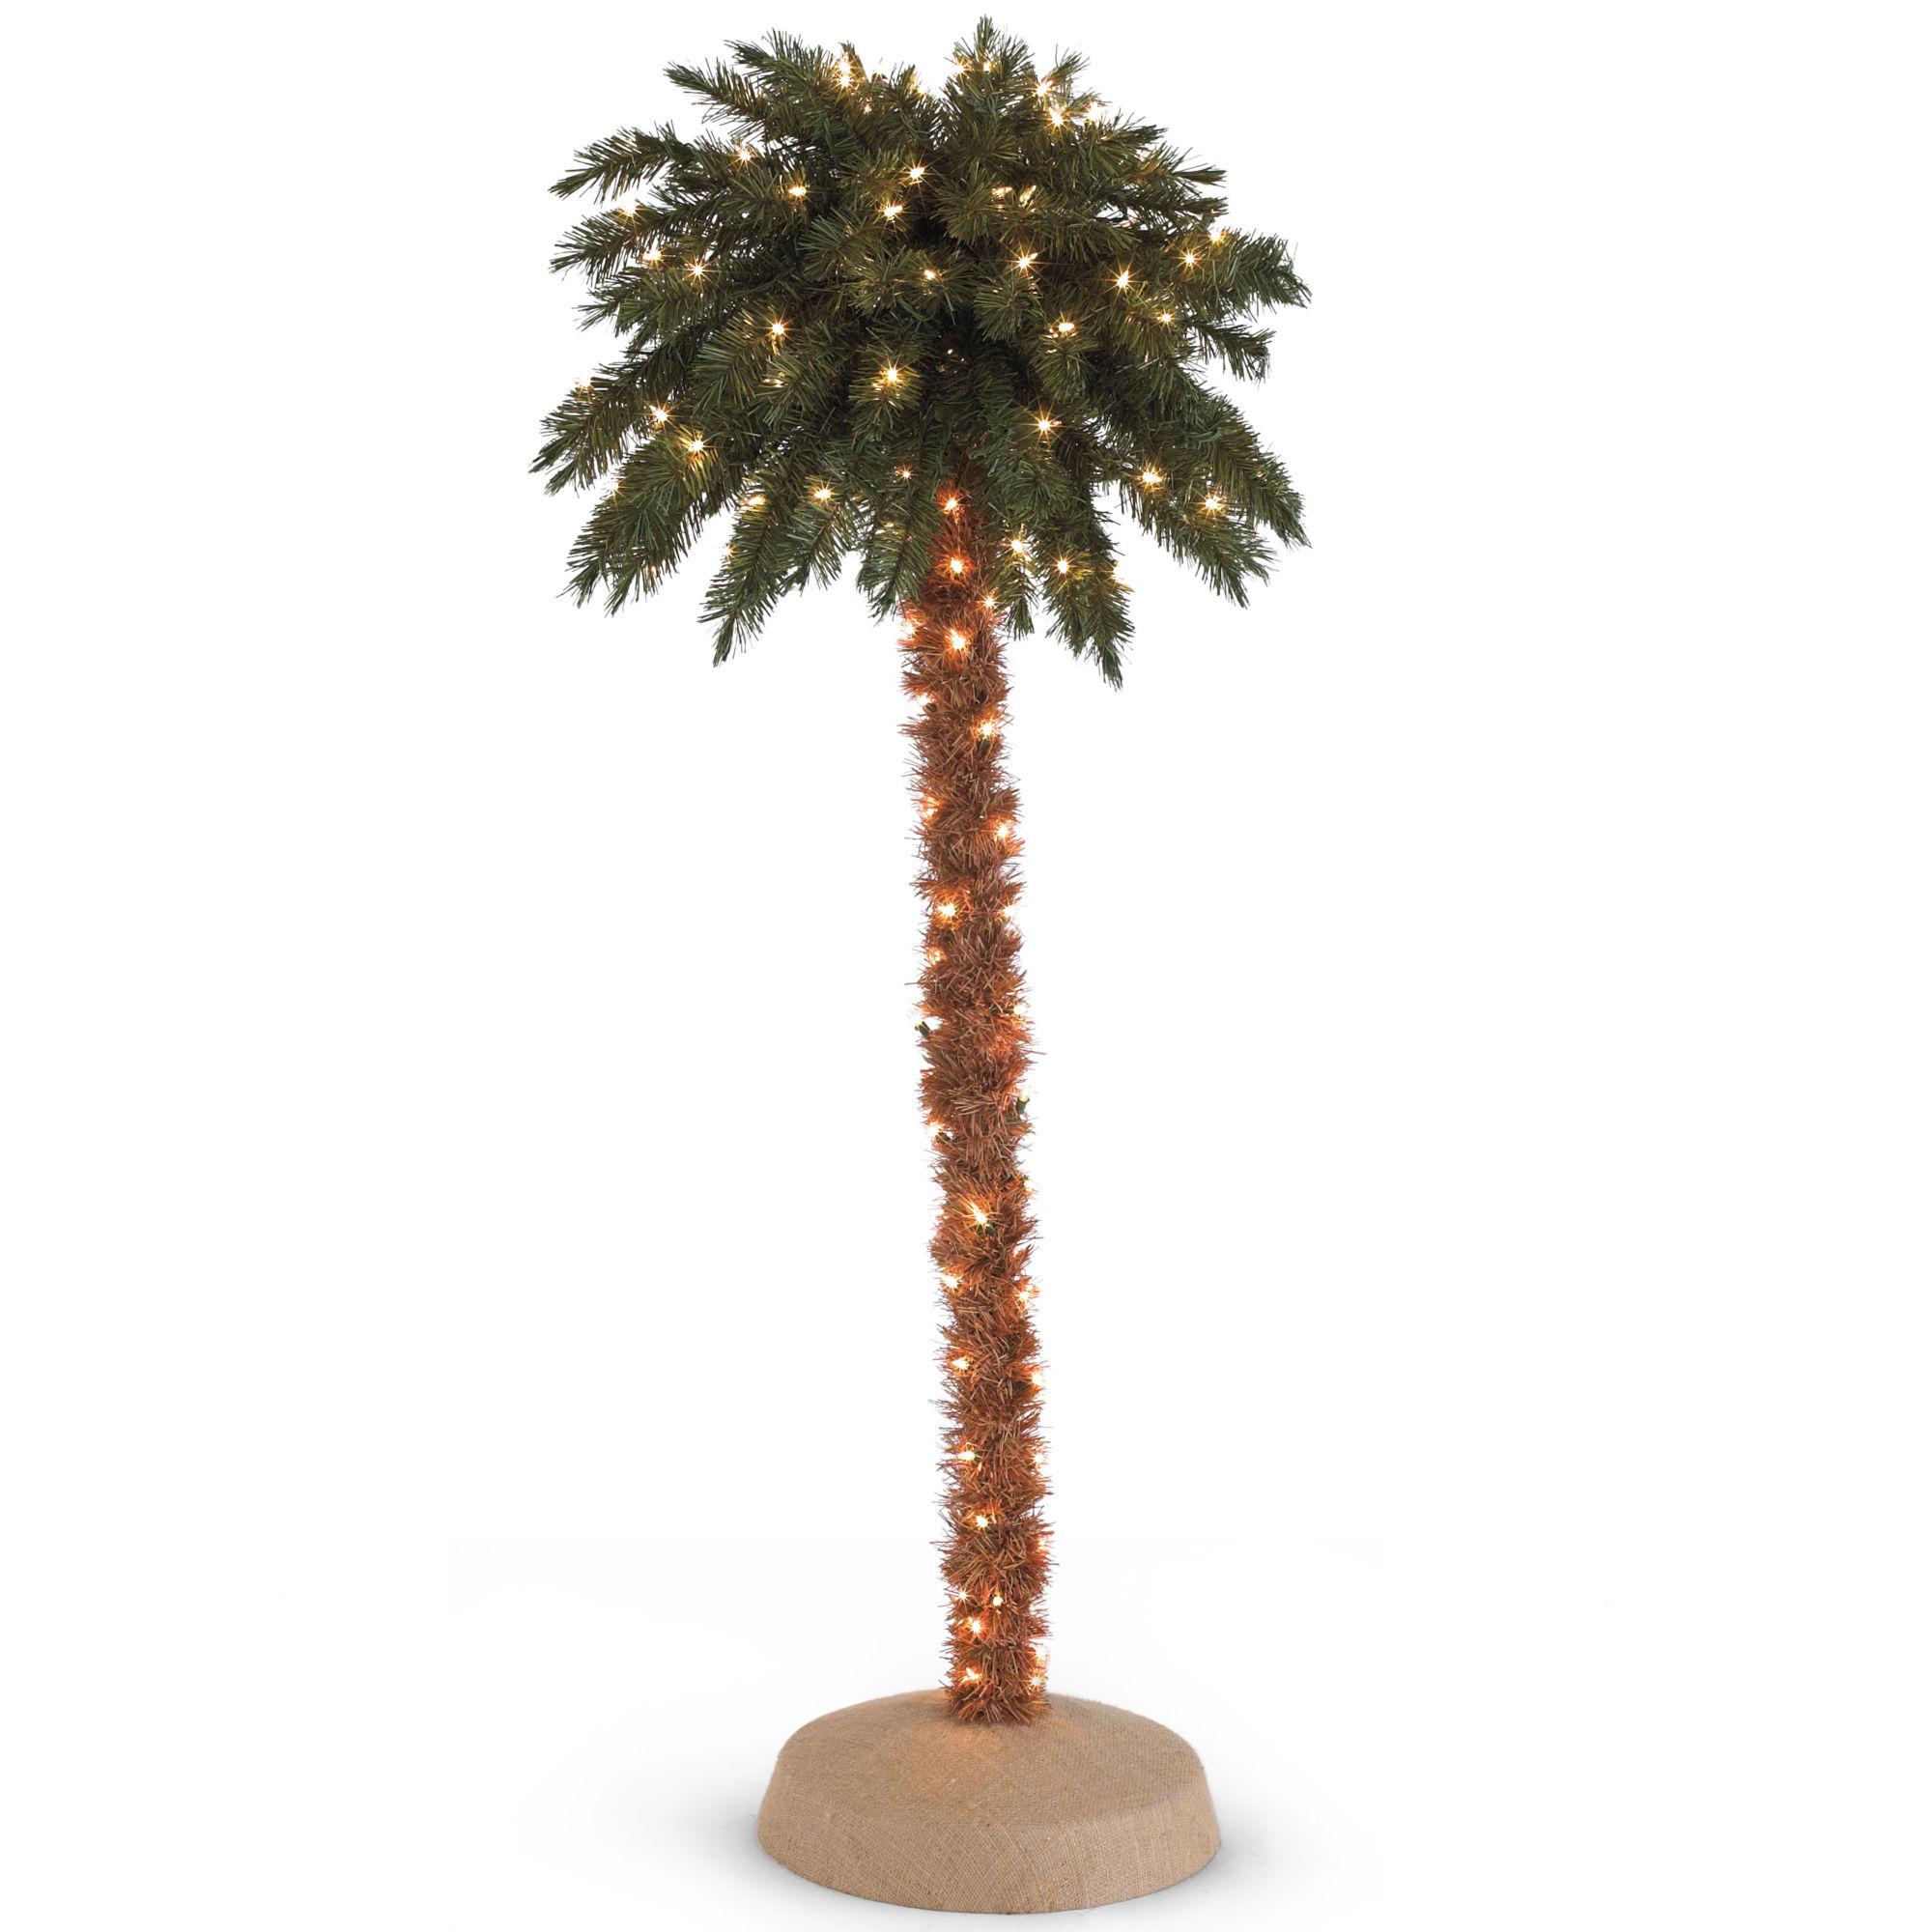 4' Pre-Lit Palm Christmas Tree